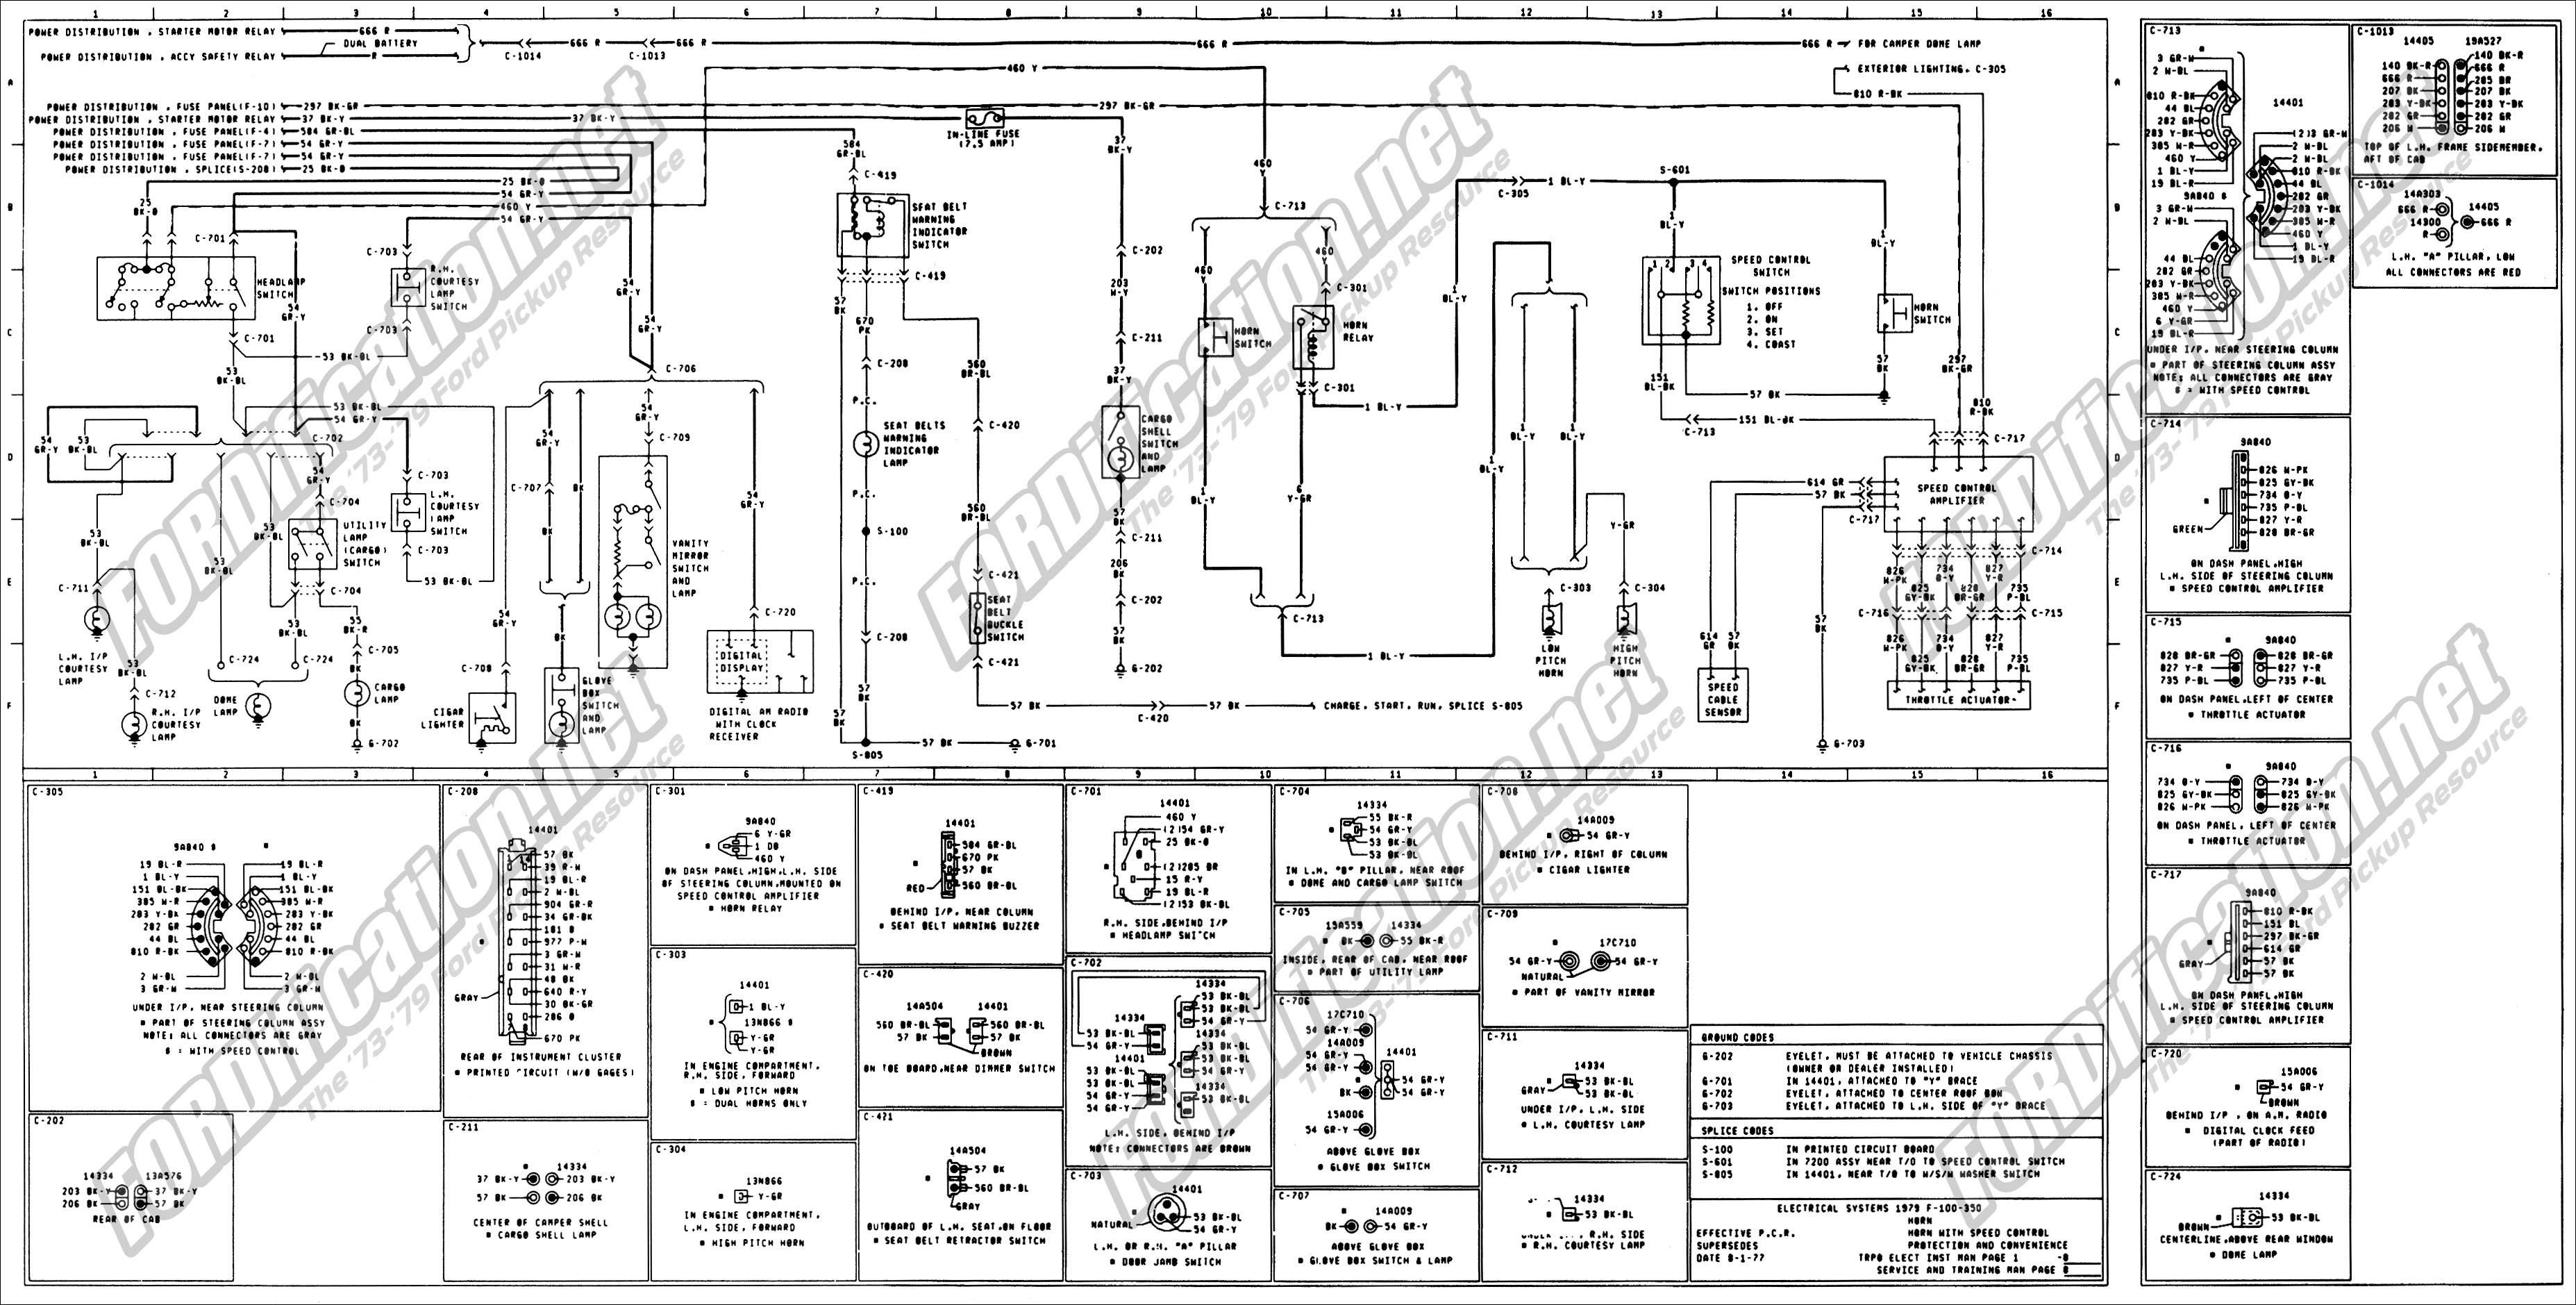 Ford 302 Alternator Wiring Diagram 1989 F150 1975 Auto Electrical Rh Doesitsuit Me 1976 85